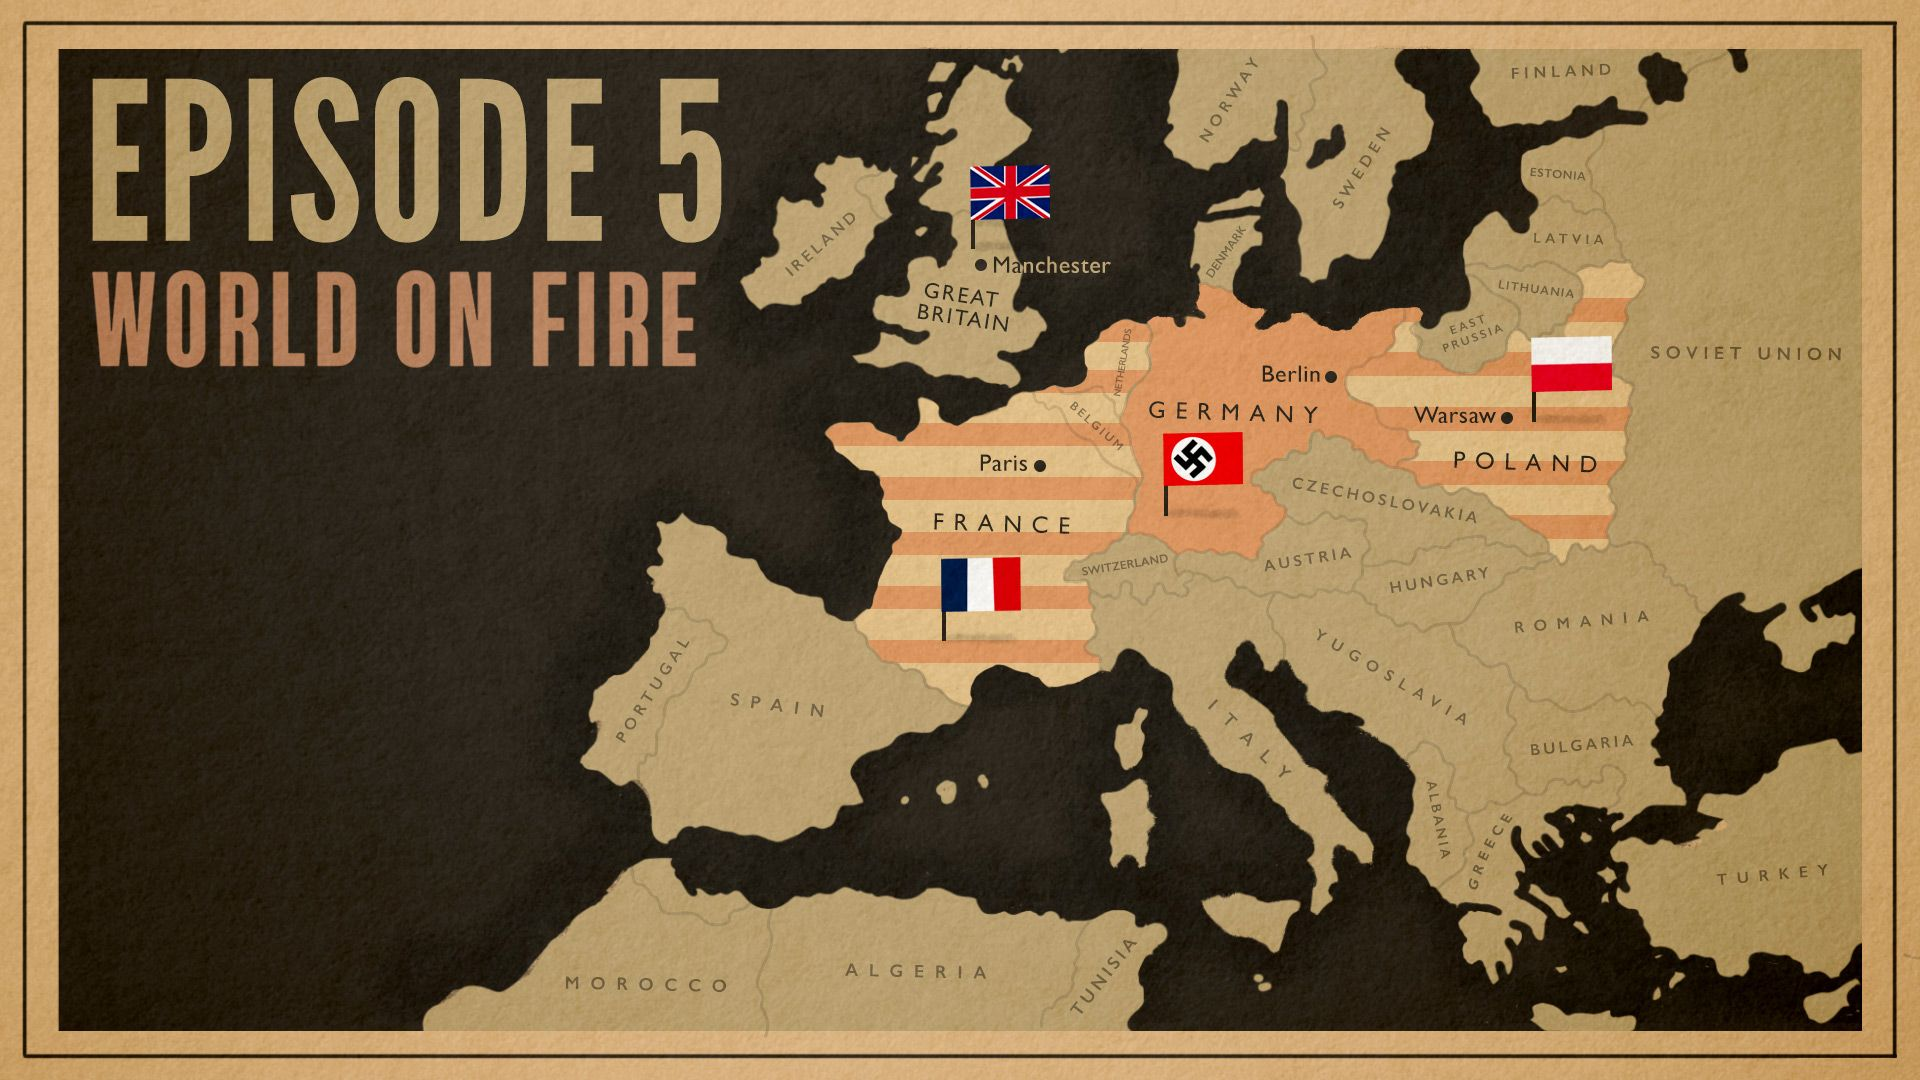 World on Fire Episode 5 Map of Europe 1940